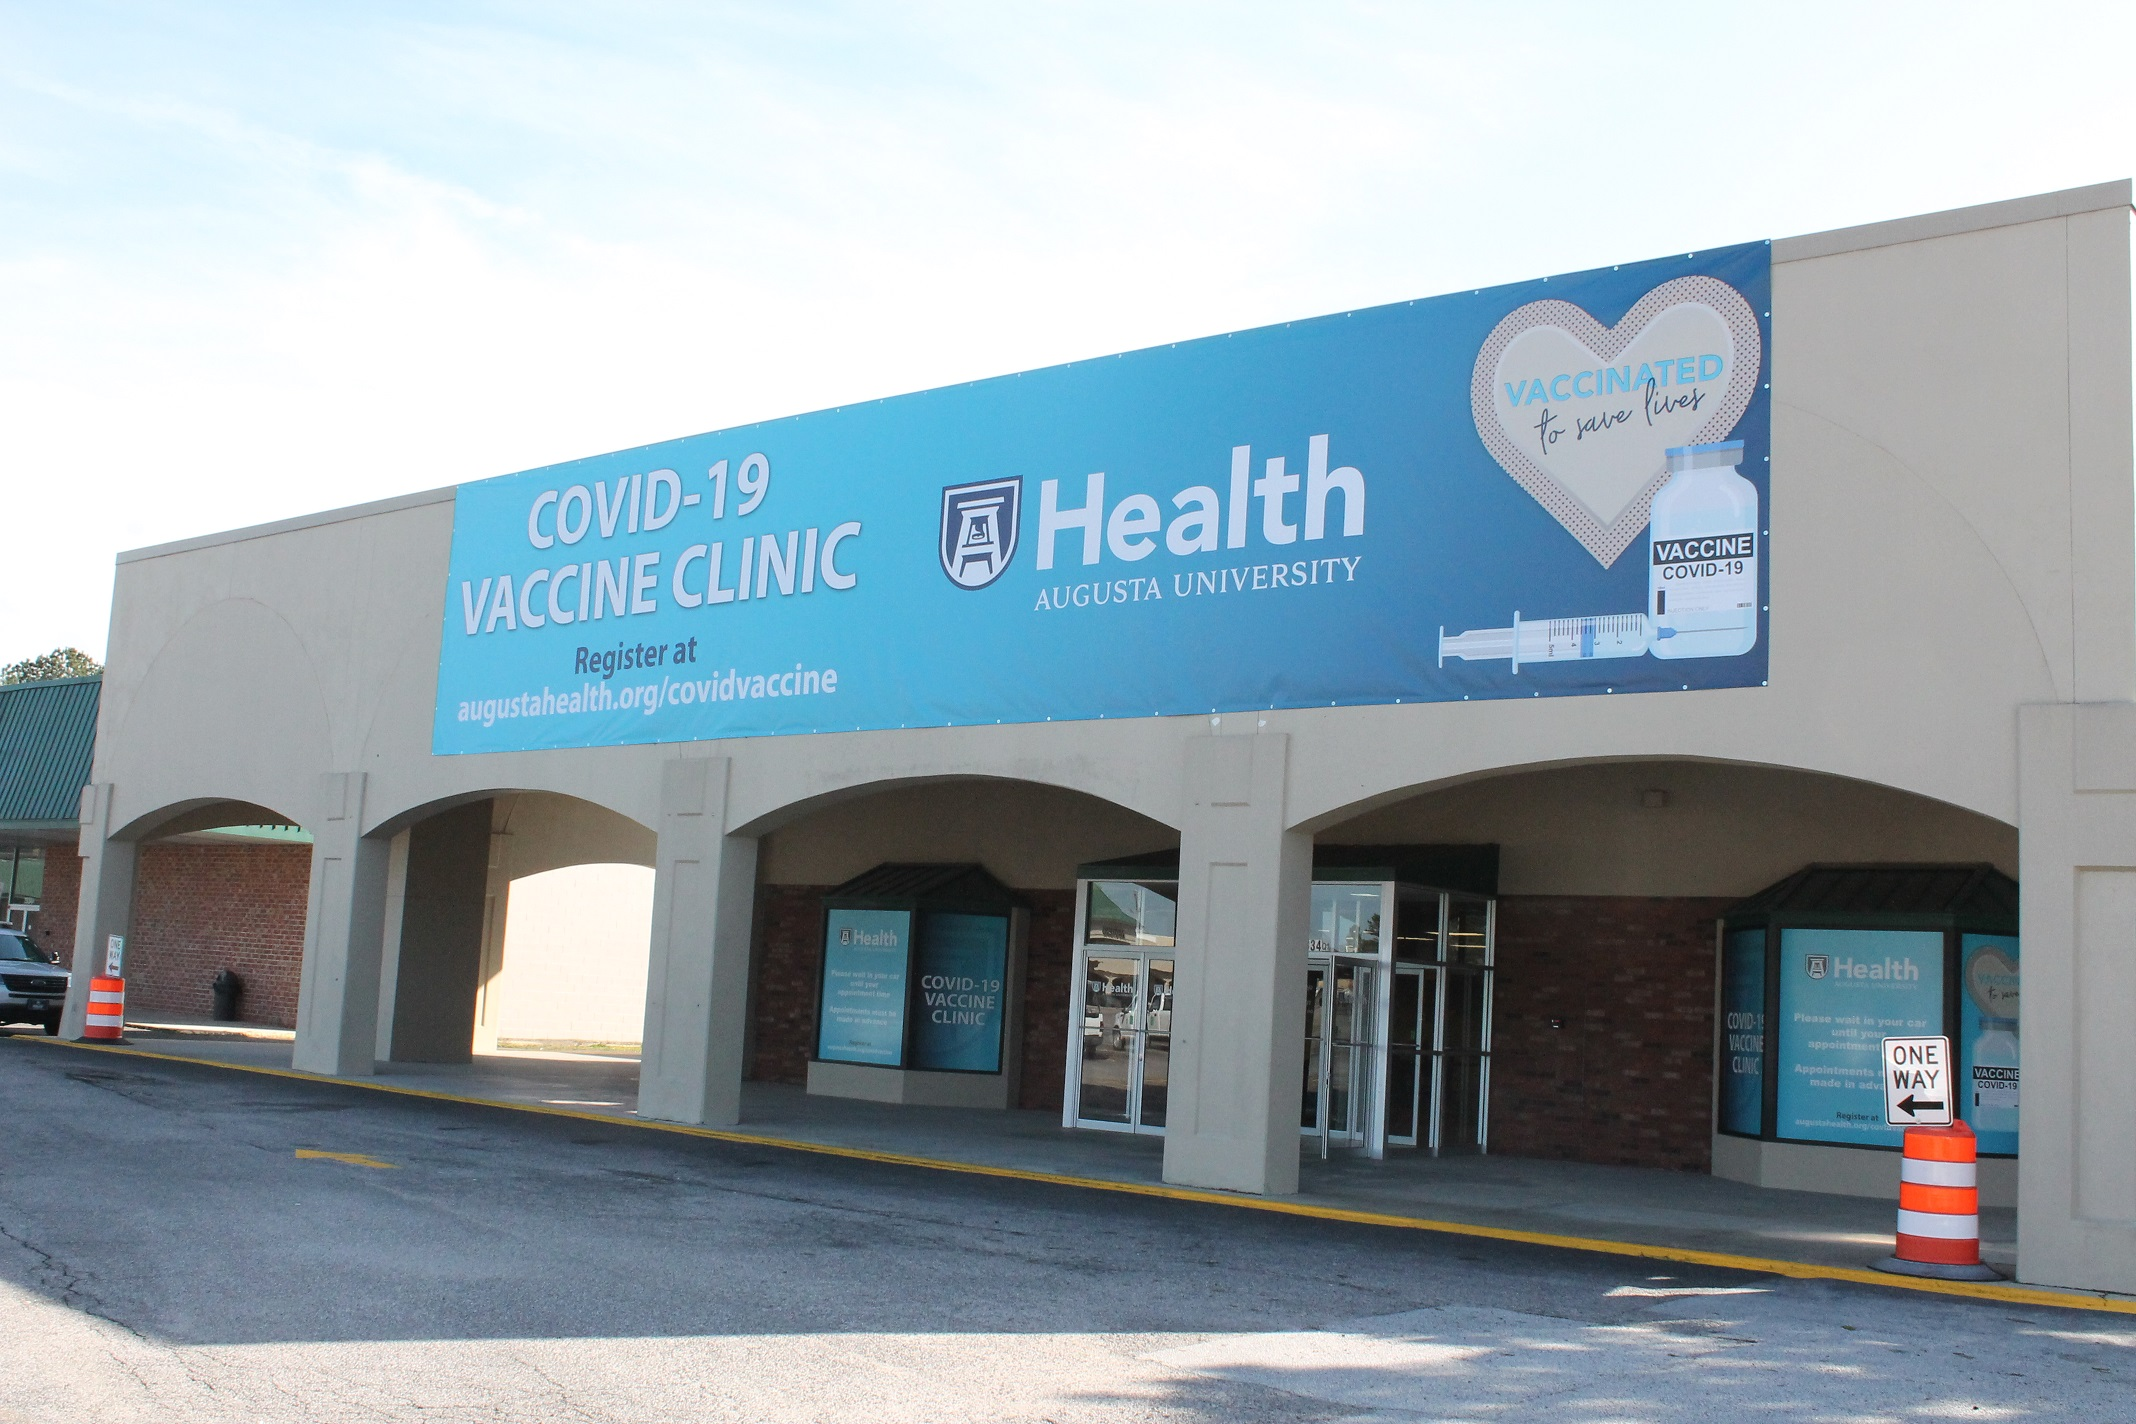 In Photos: New COVID-19 vaccine clinic opens at Washington Square